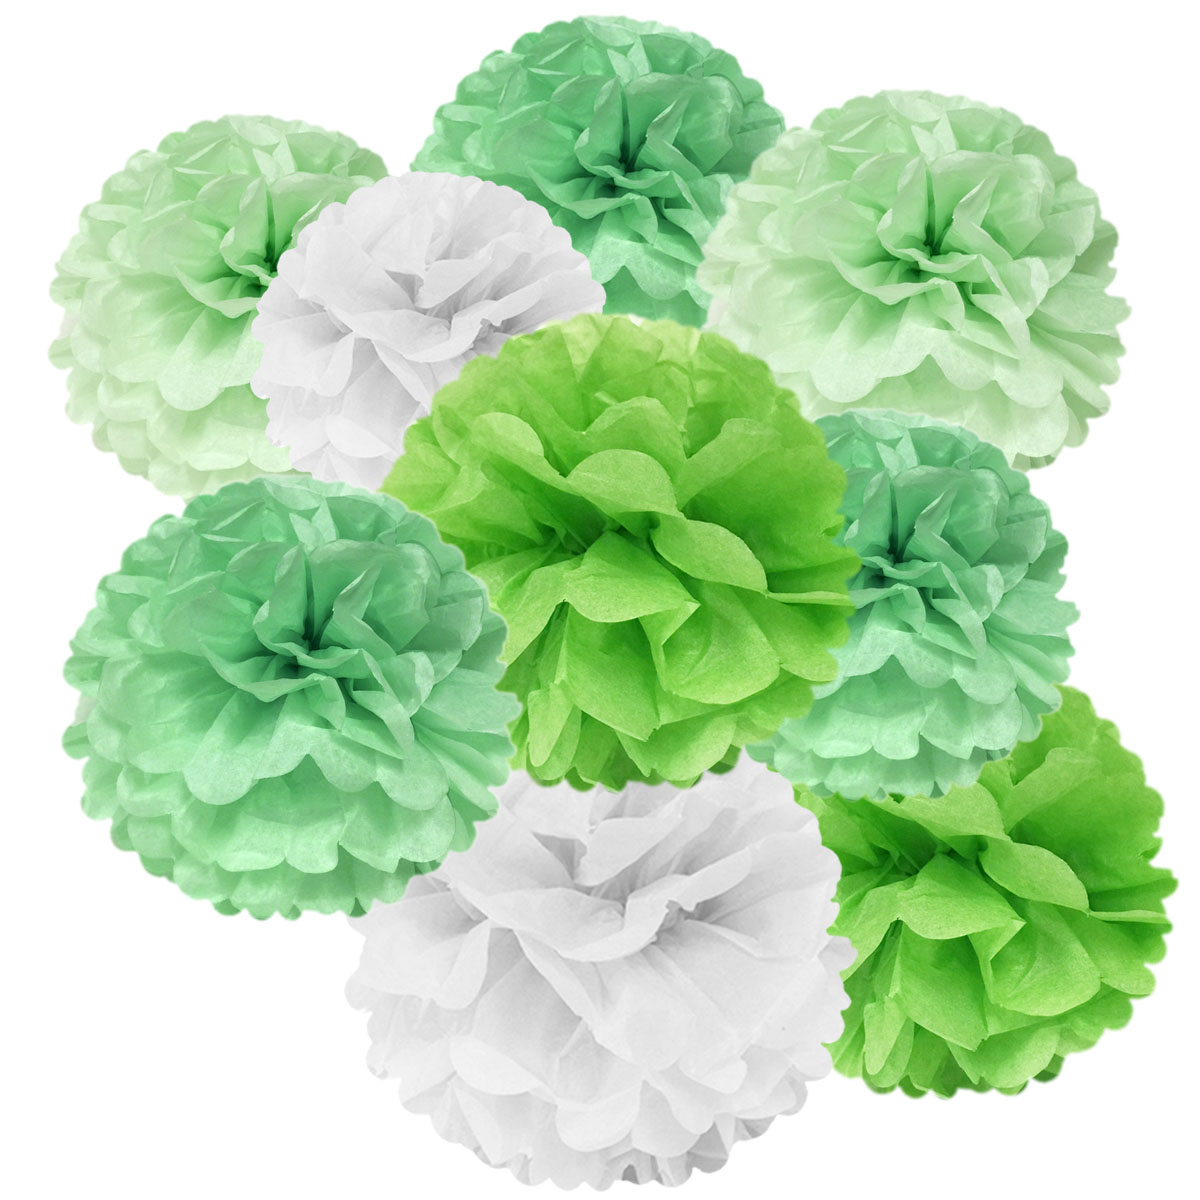 Wrapables® Set of 12 Tissue Pom Pom Party Decorations for Weddings, Birthday Parties Baby Showers and Nursery Decor, Mint/Sea Green/White/Lime Green